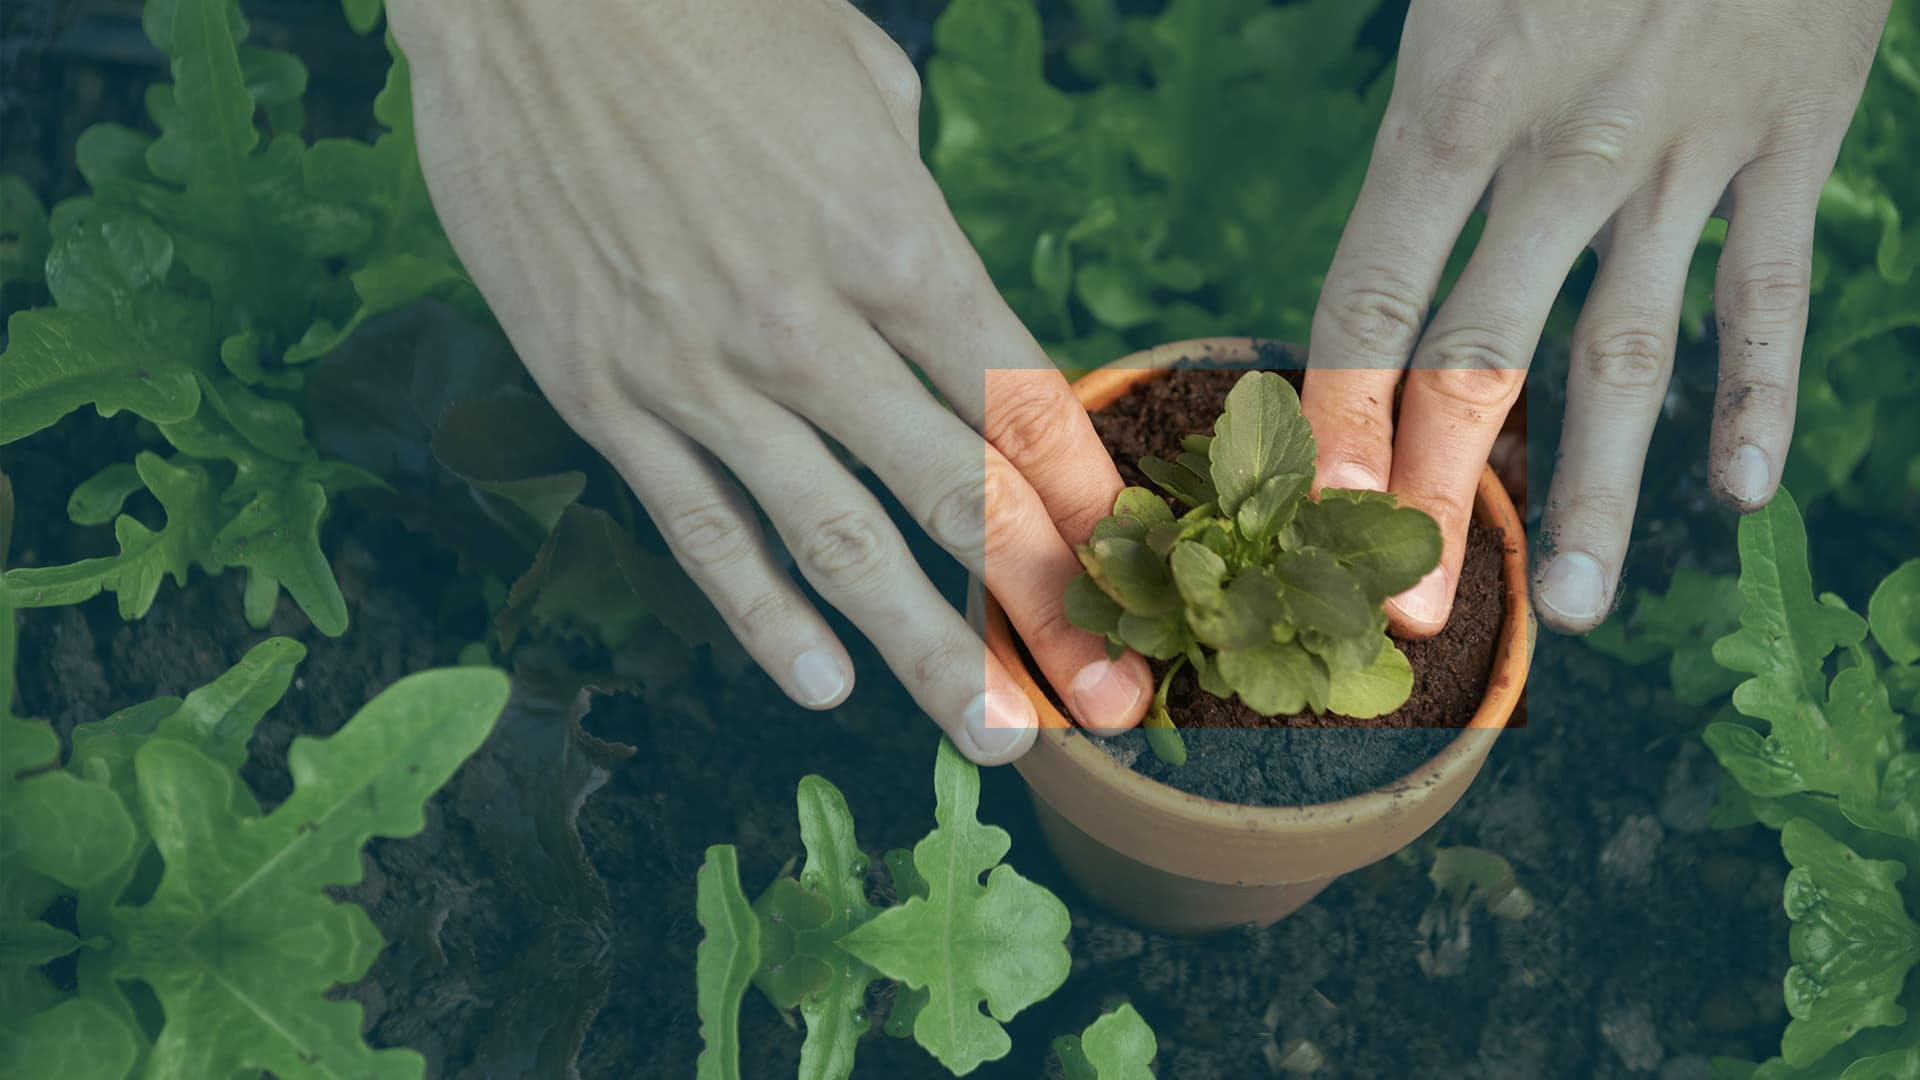 Hands planting a seedling in a pot